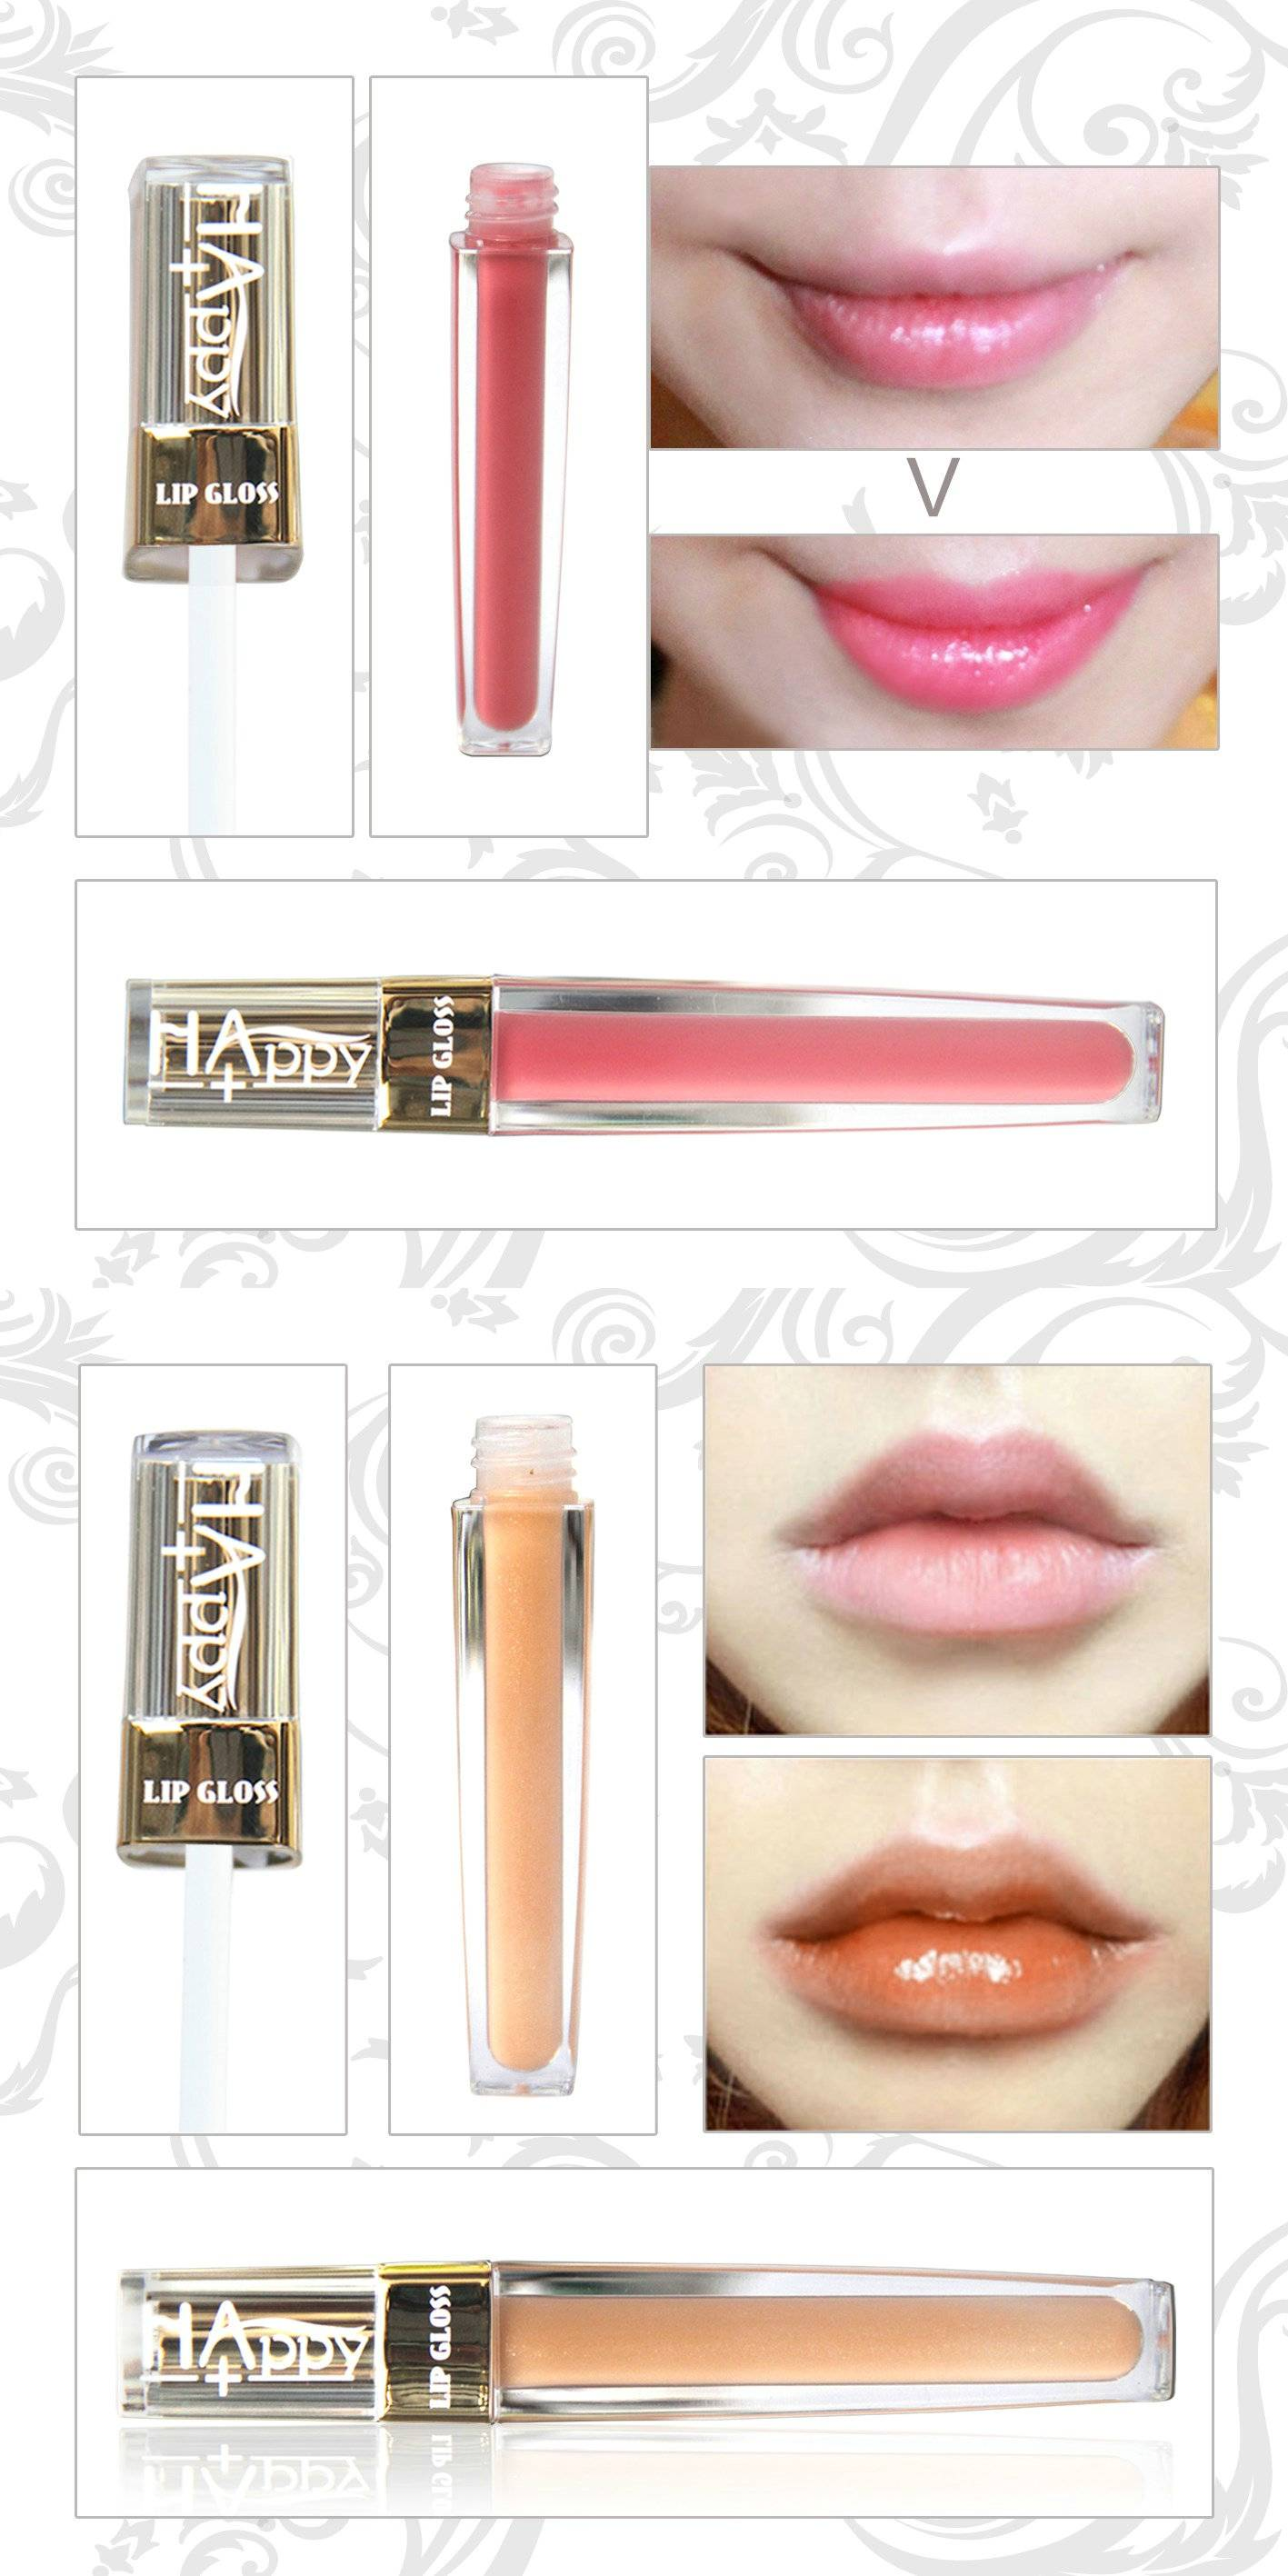 HAPPY+ Lip Gloss Lip Shine Lip Gel